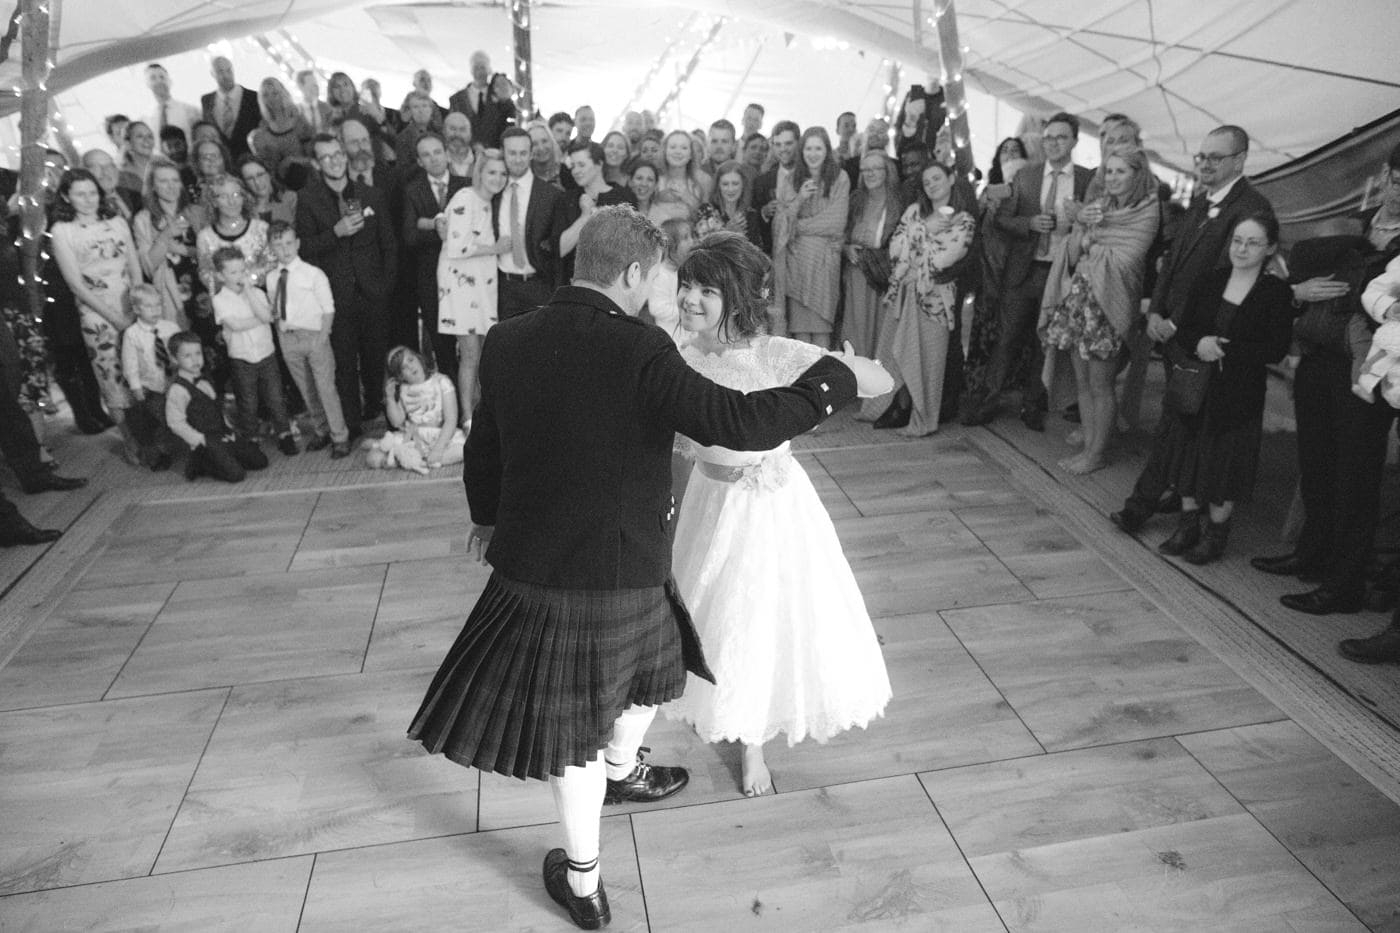 Bride and Groom Swing Dancing in Tipi